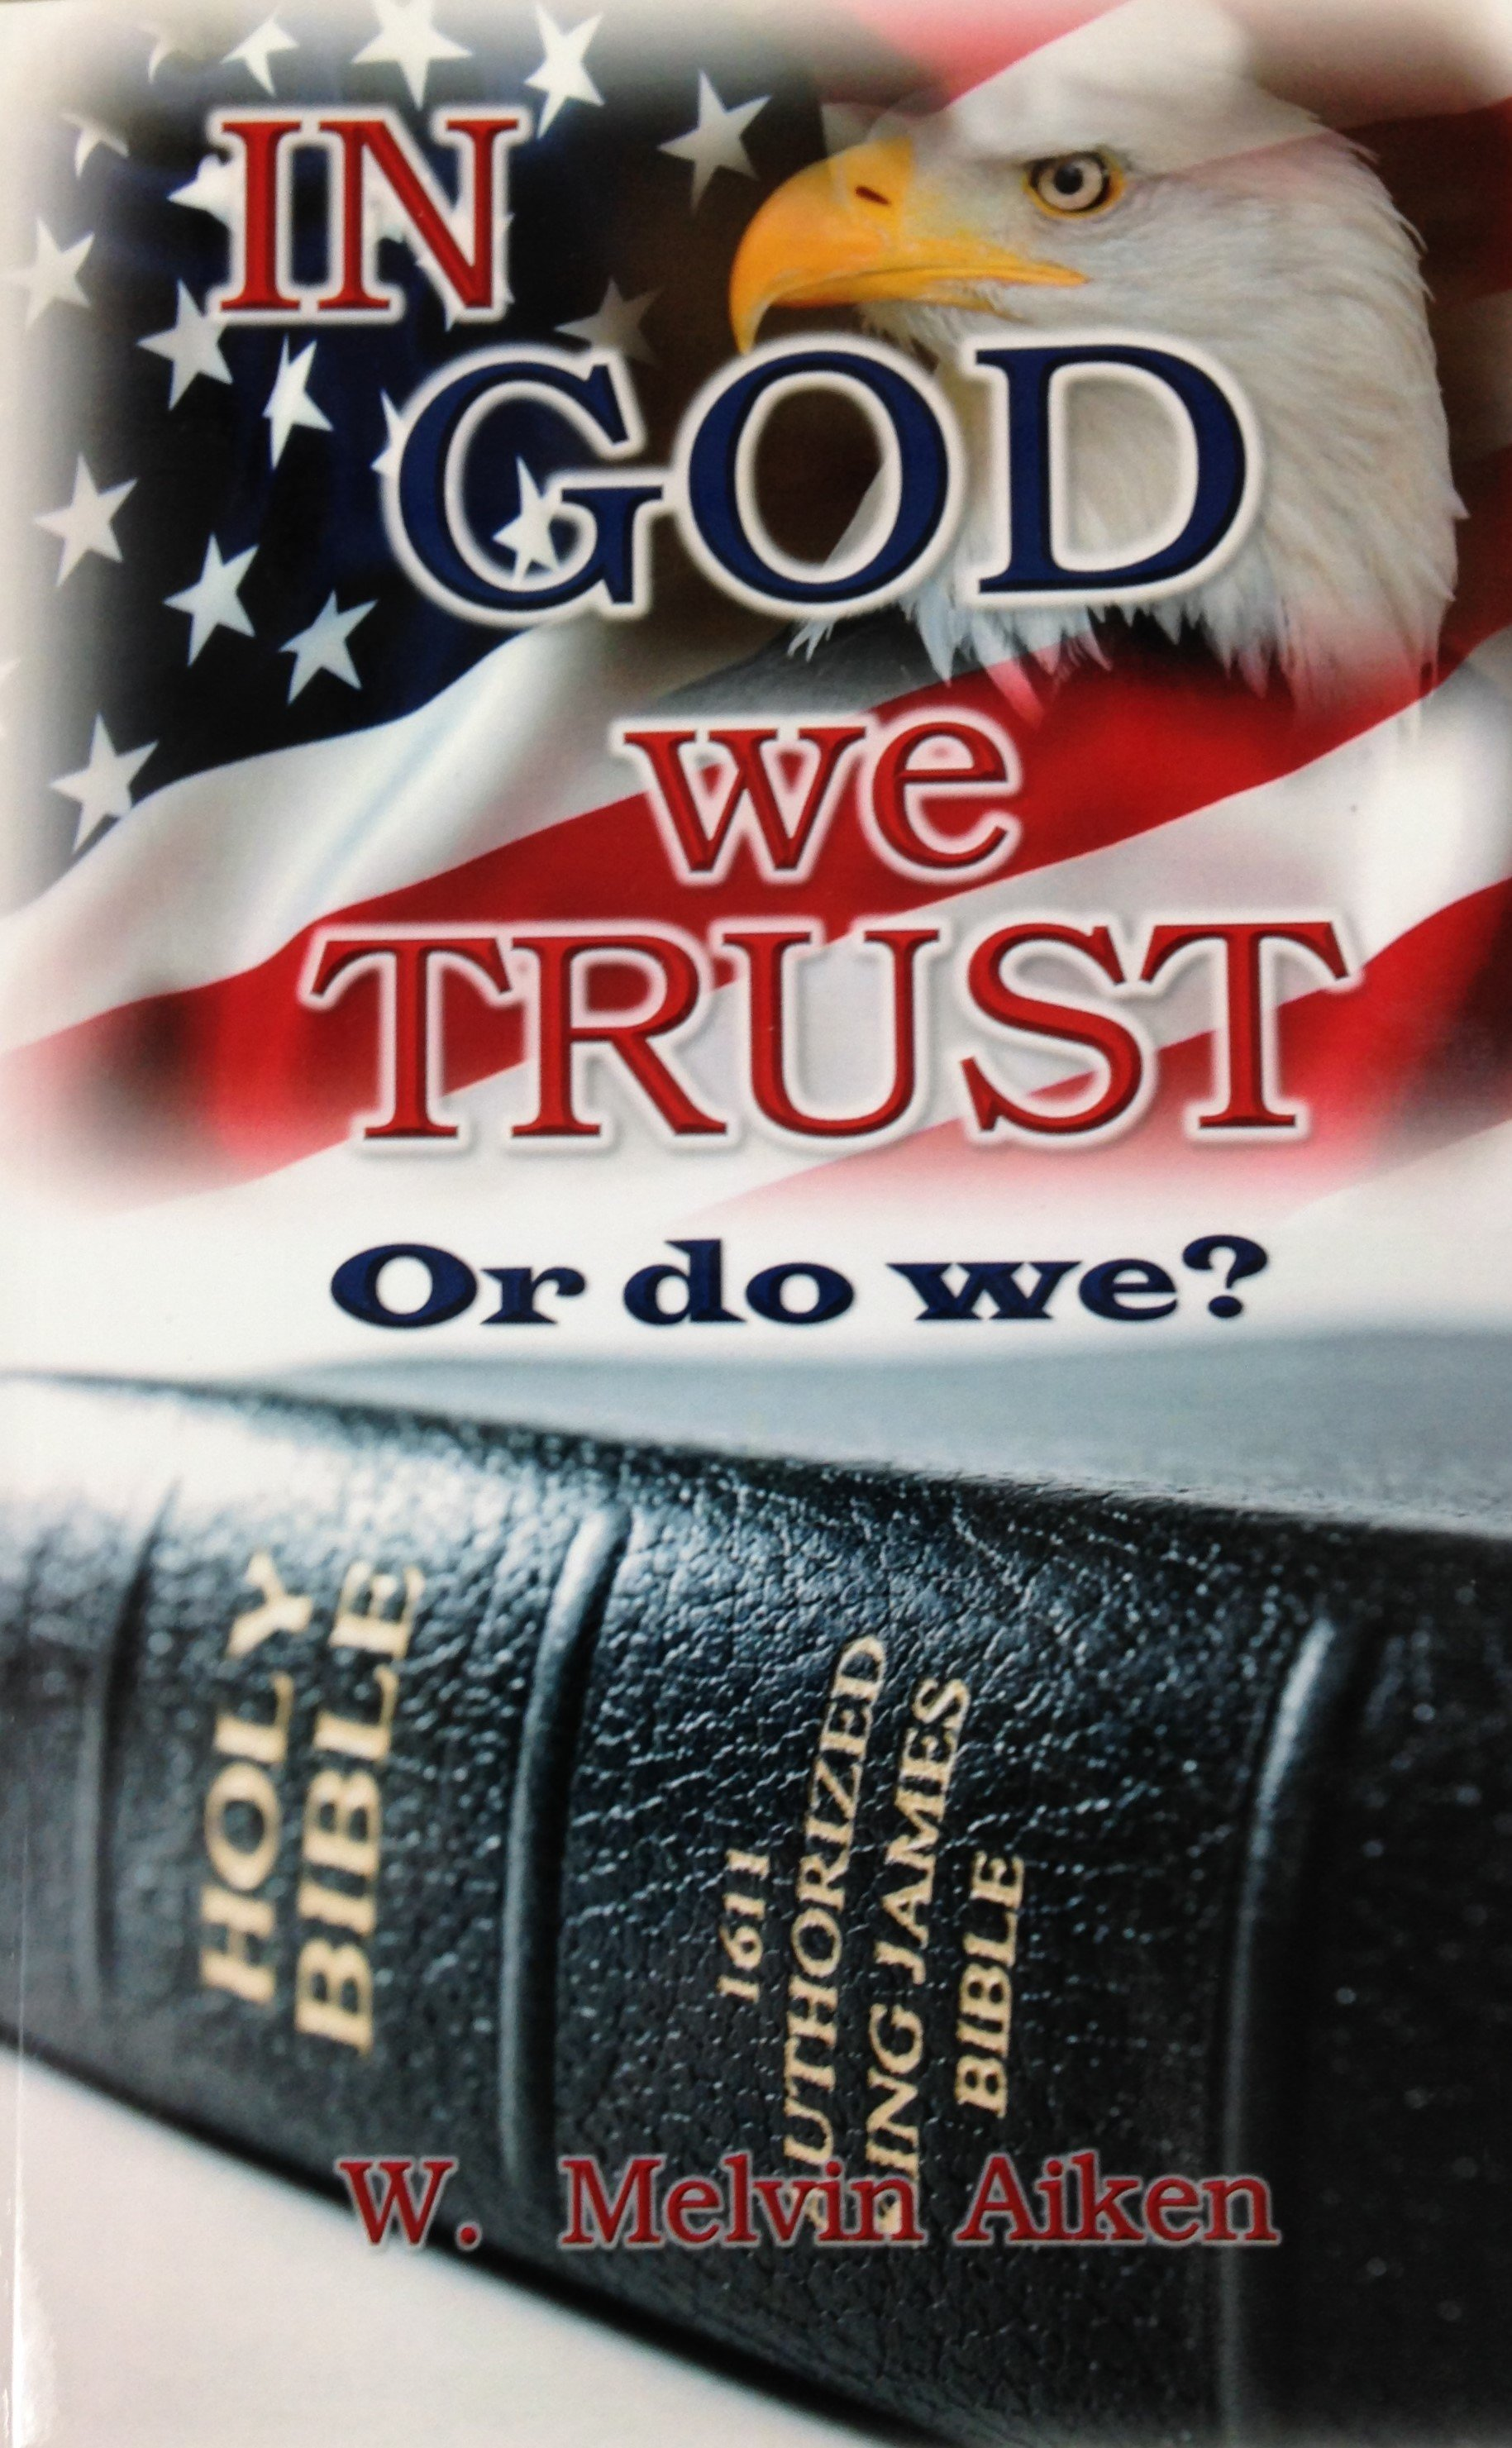 In God We Trust or do we? By Dr. W. Melvin Aiken 00022